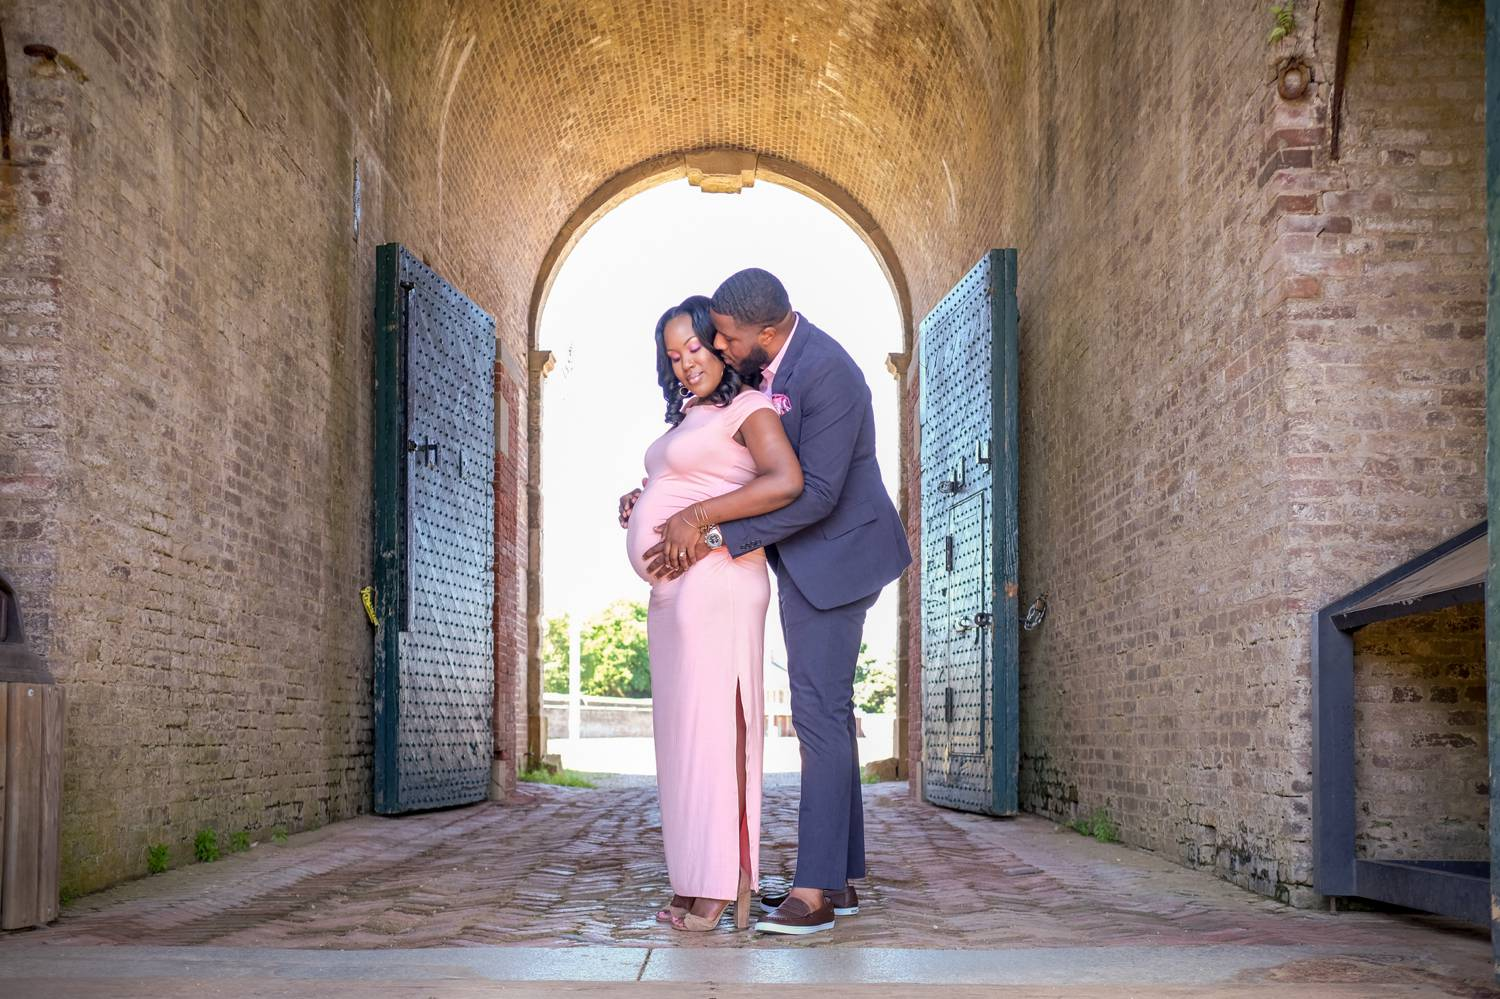 A pregnant woman in a fitted pink dress is embraced from behind by a man in a blue suit. They stand in the archway of an outdoor portico framed by old wooden doors.